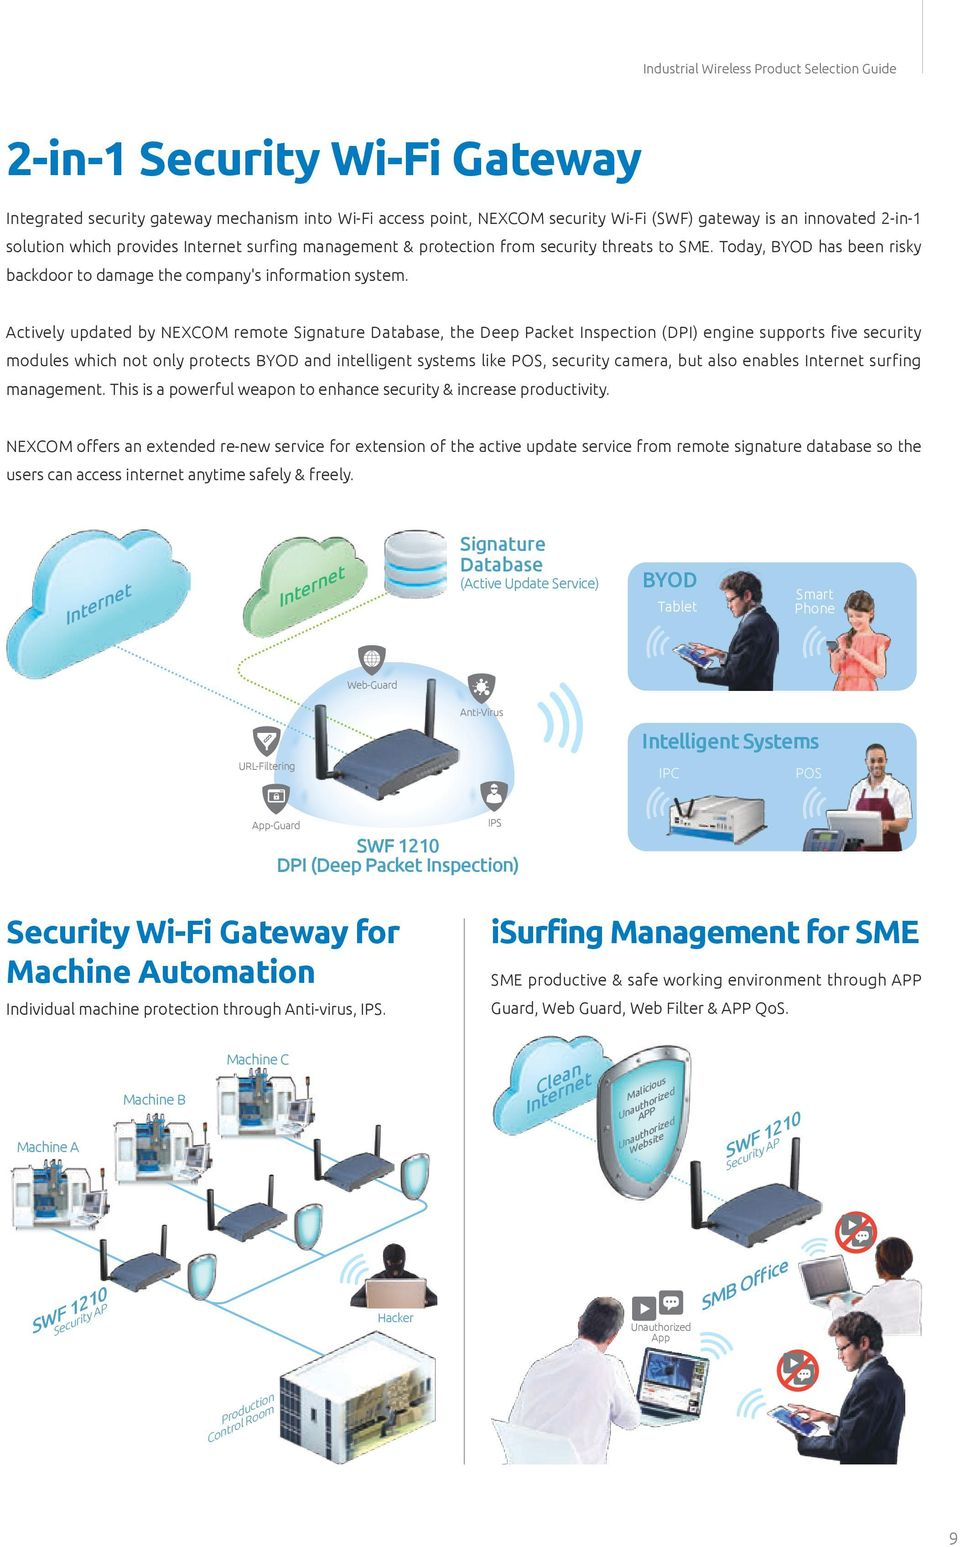 Actively updated by NEXCOM remote Signature Database, the Deep Packet Inspection (DPI) engine supports five security modules which not only protects BYOD and intelligent systems like POS, security